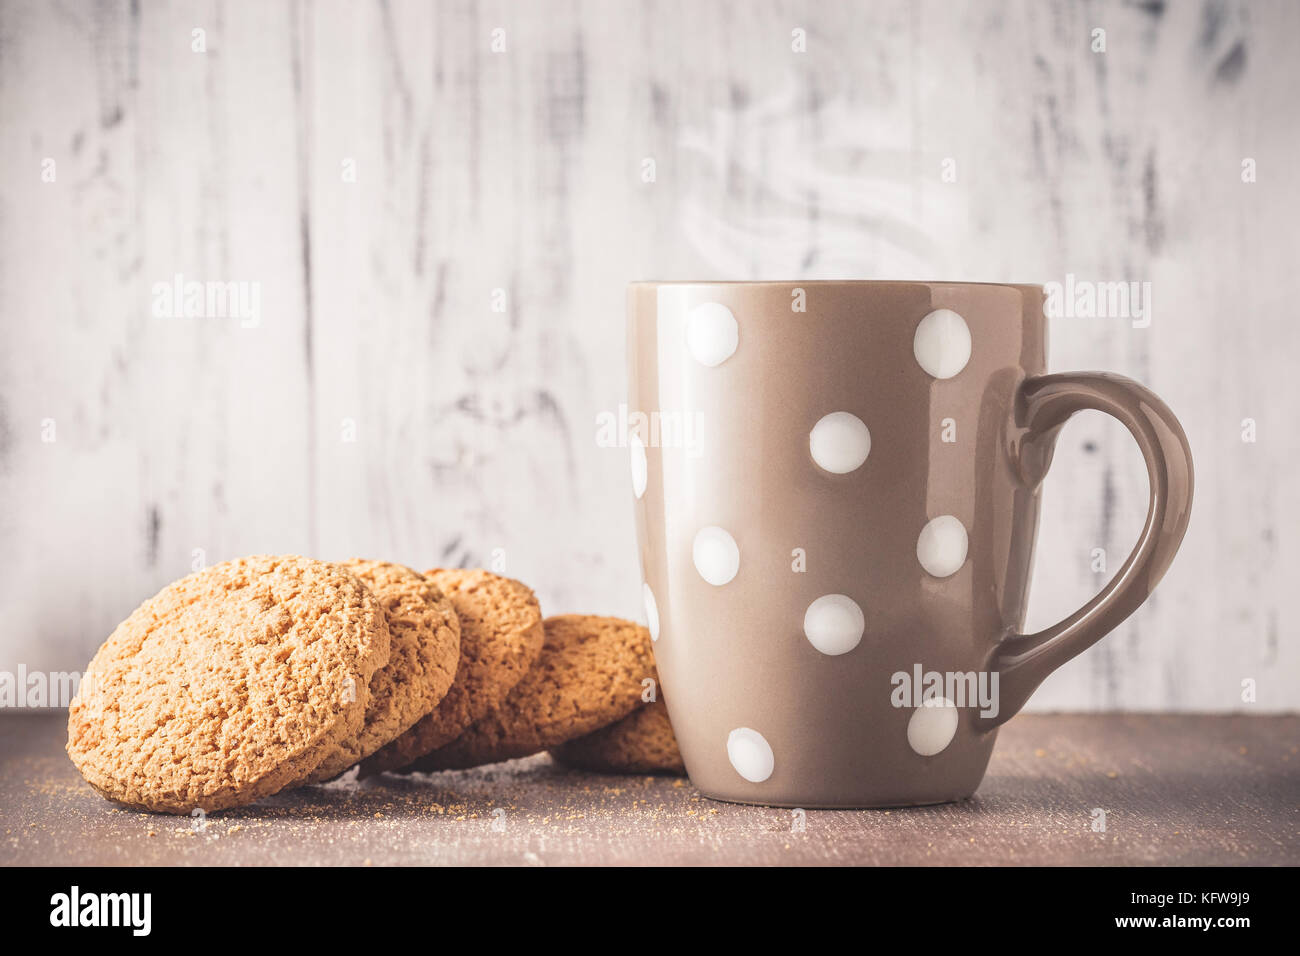 Oat cookies and polka dot mug with hot drink over wooden background - Stock Image